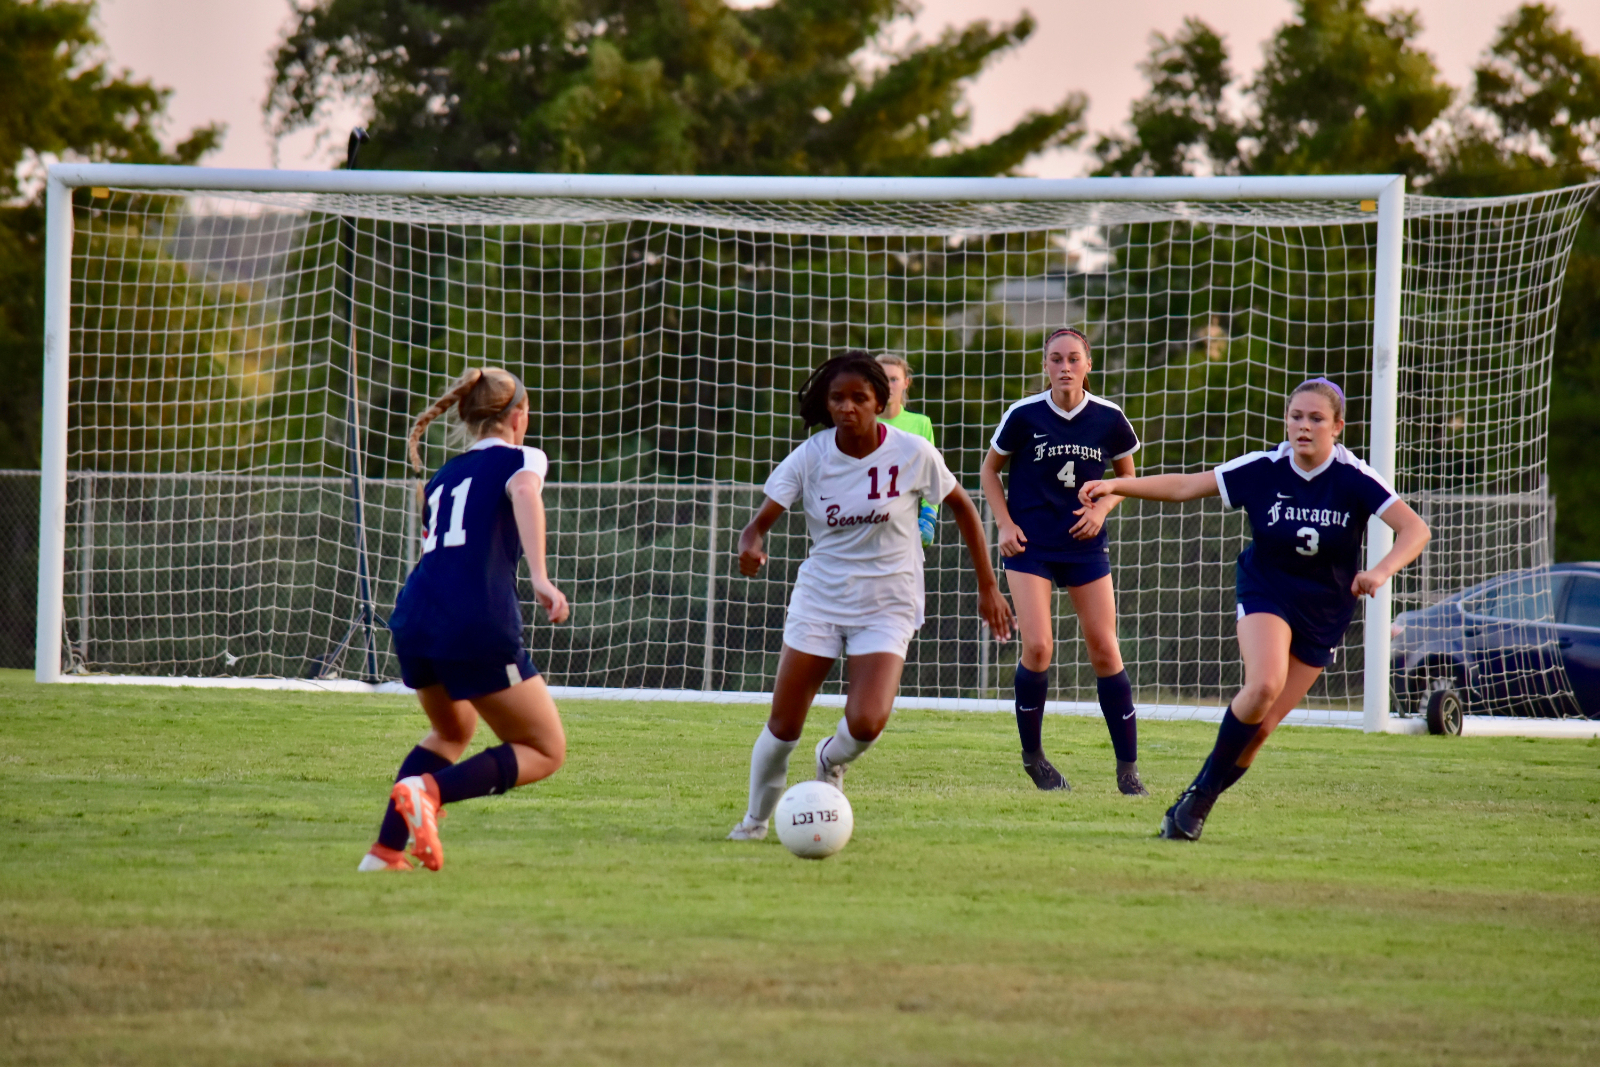 Winner heads to state when Bearden hosts rival Farragut on Saturday